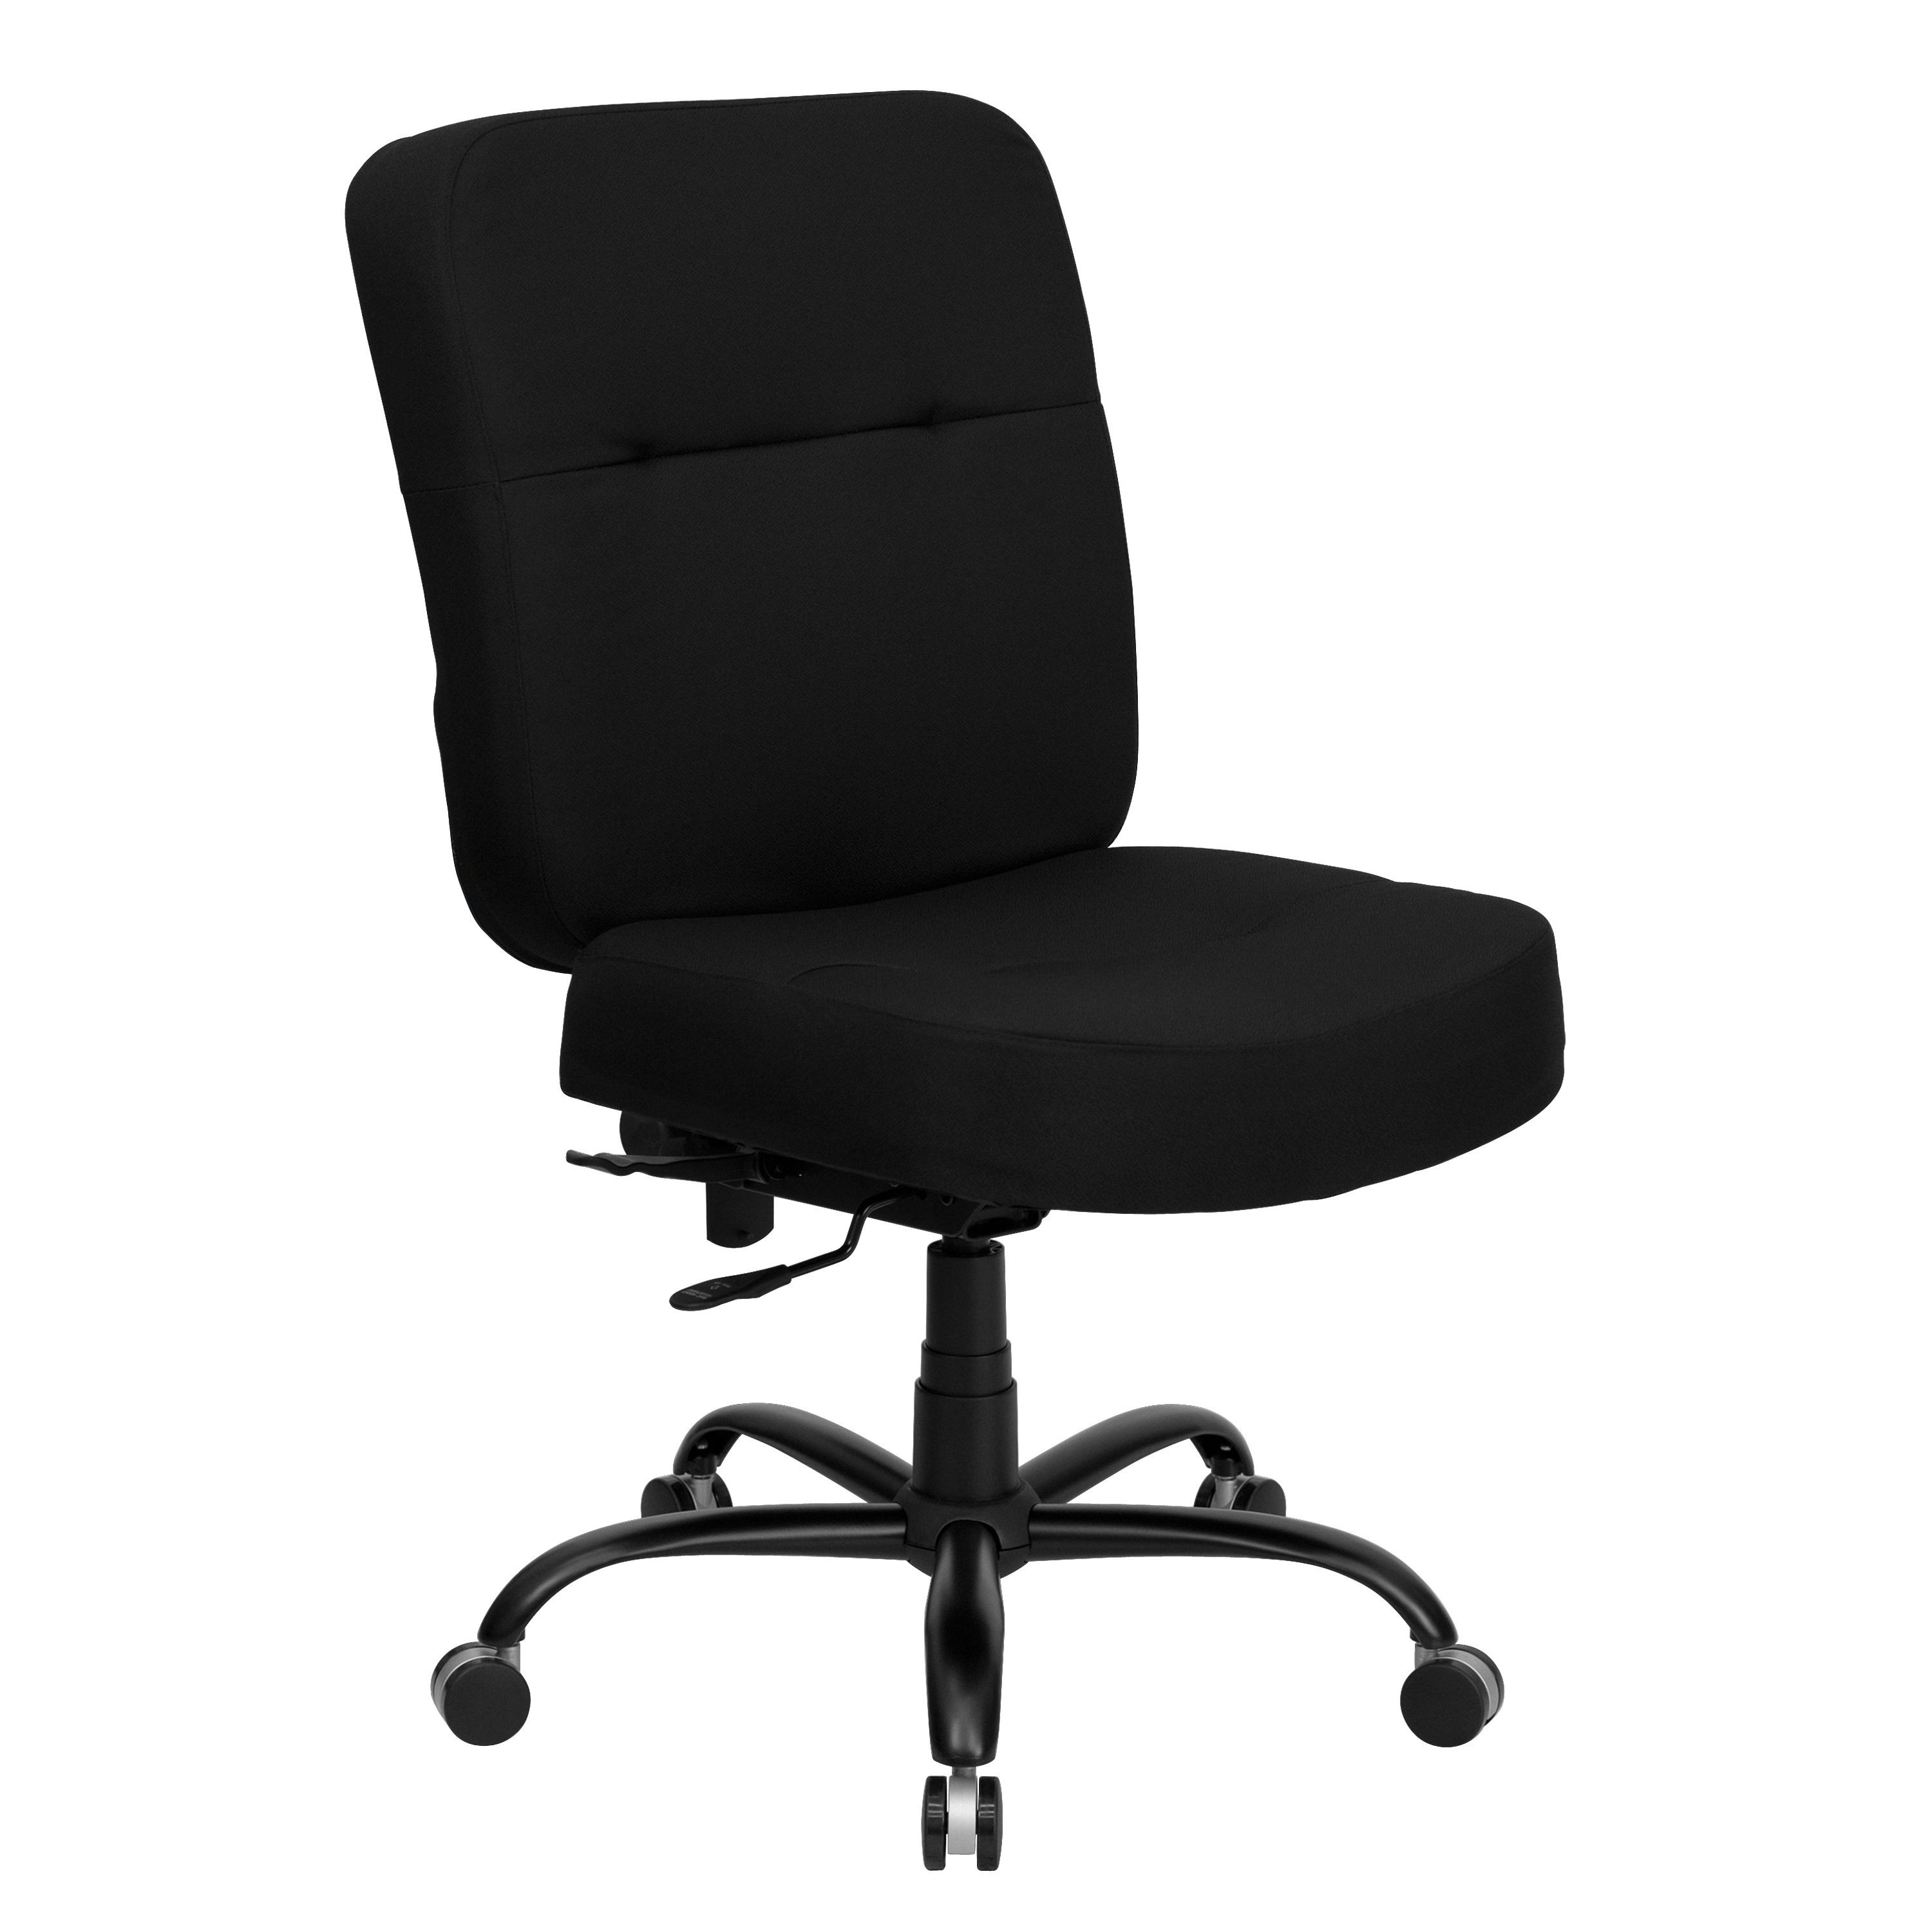 Flash Furniture WL-735SYG-BK-GG HERCULES Series Big & Tall Black Fabric Executive Task Chair with Extra Wide Seat, 400 Lb. Capacity